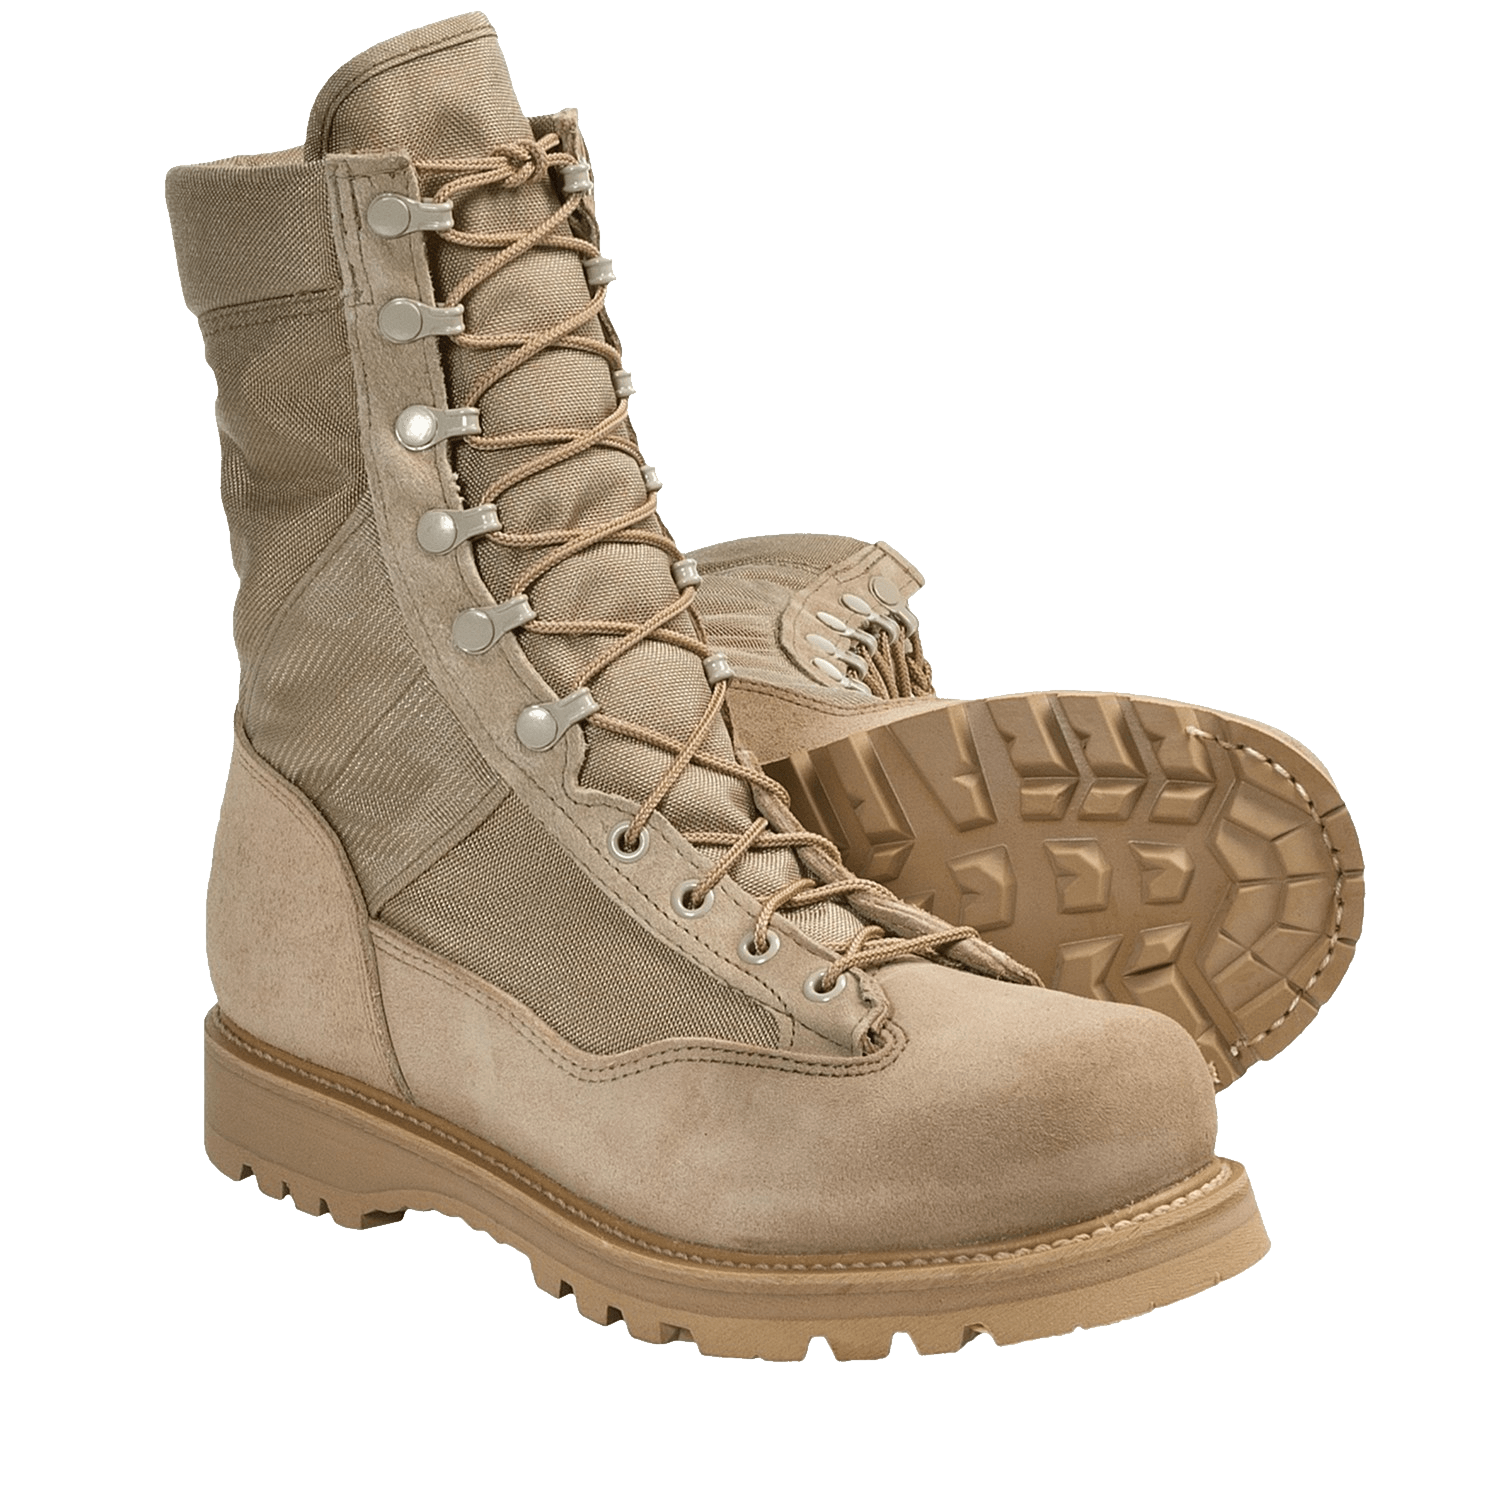 Combat Boots Png Image PNG Image